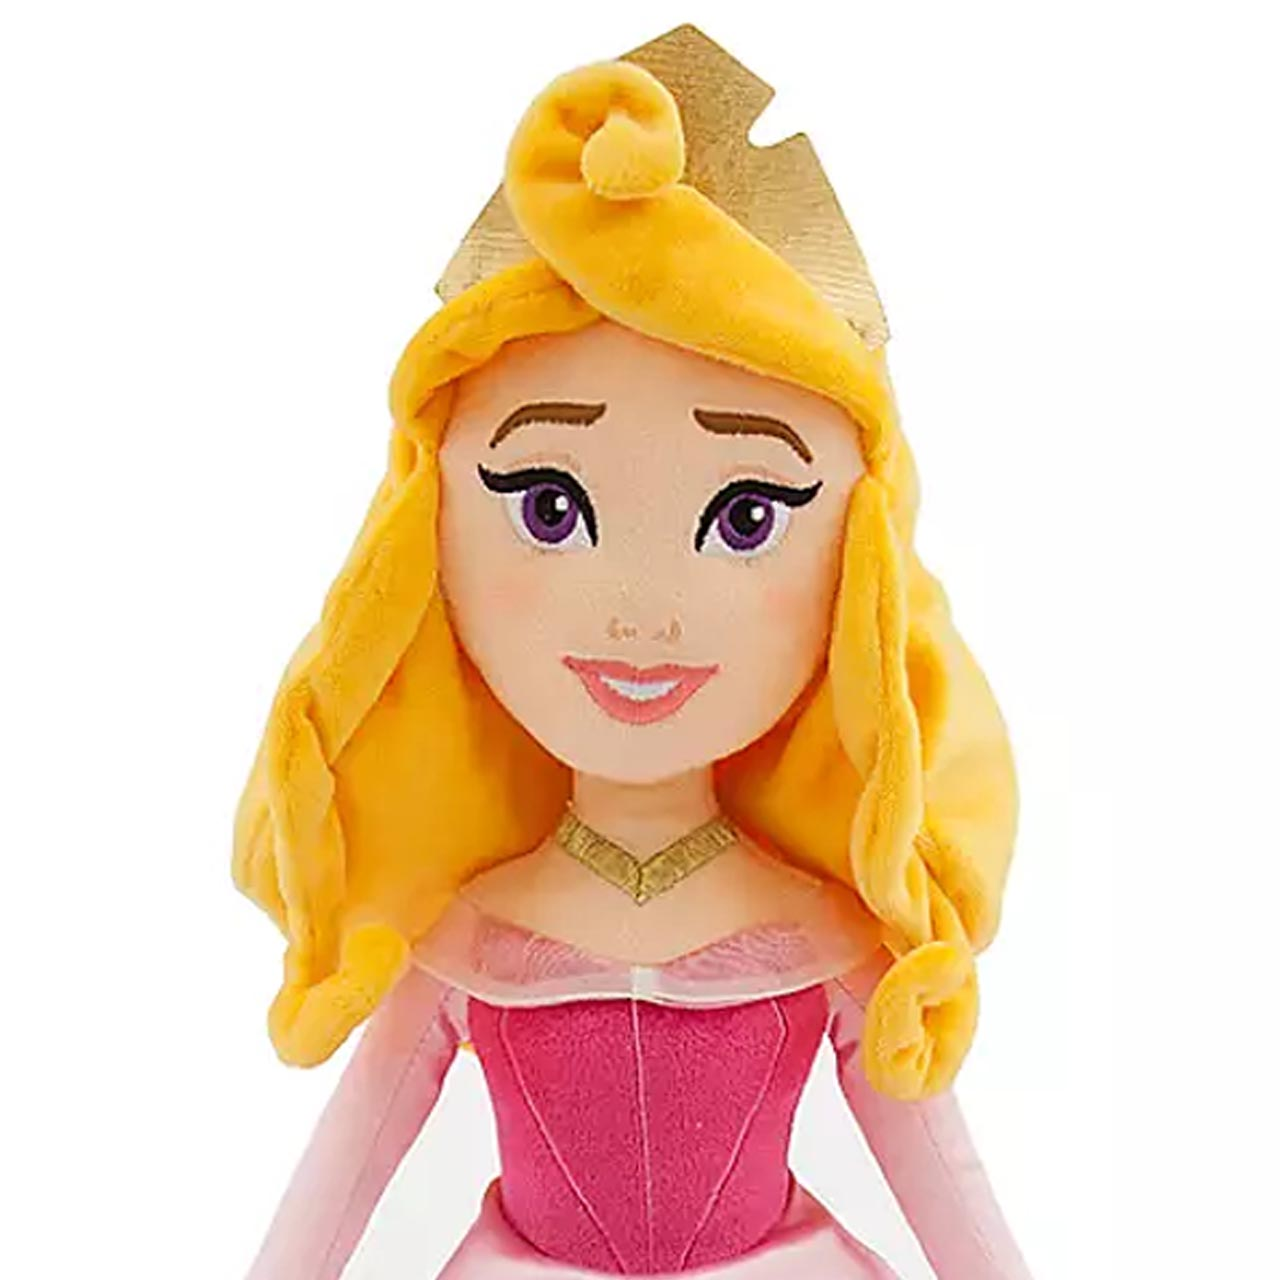 Disney Princess Sleeping Beauty Large Plush Aurora Doll